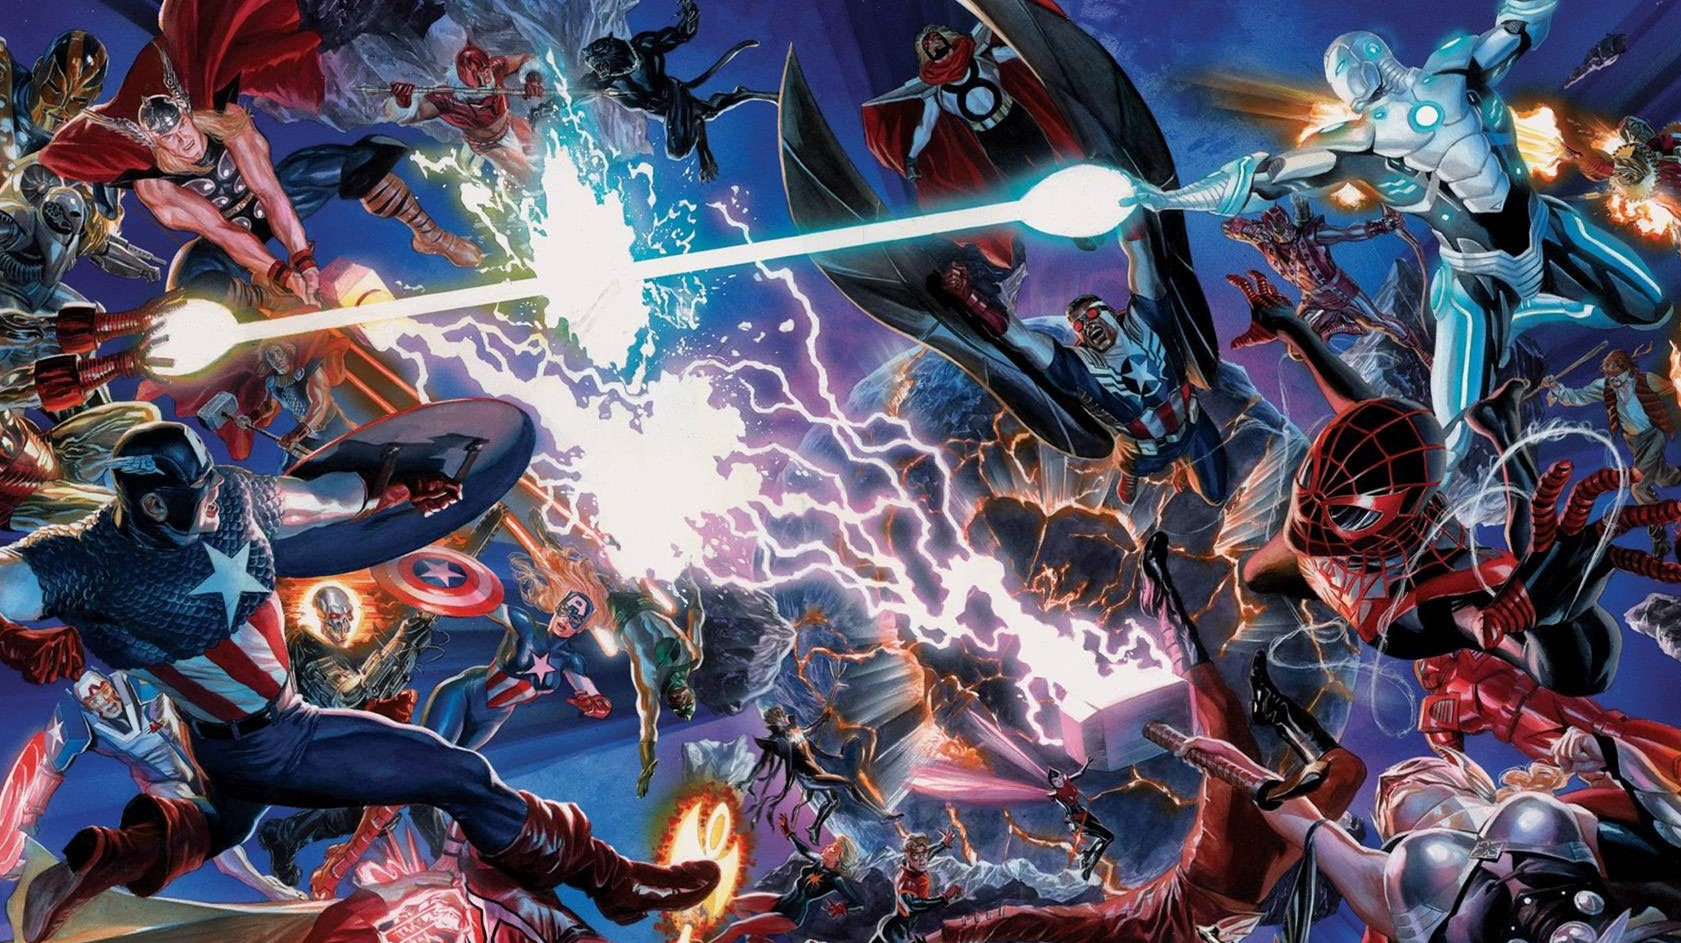 Painel de Secret Wars da Marvel Comics